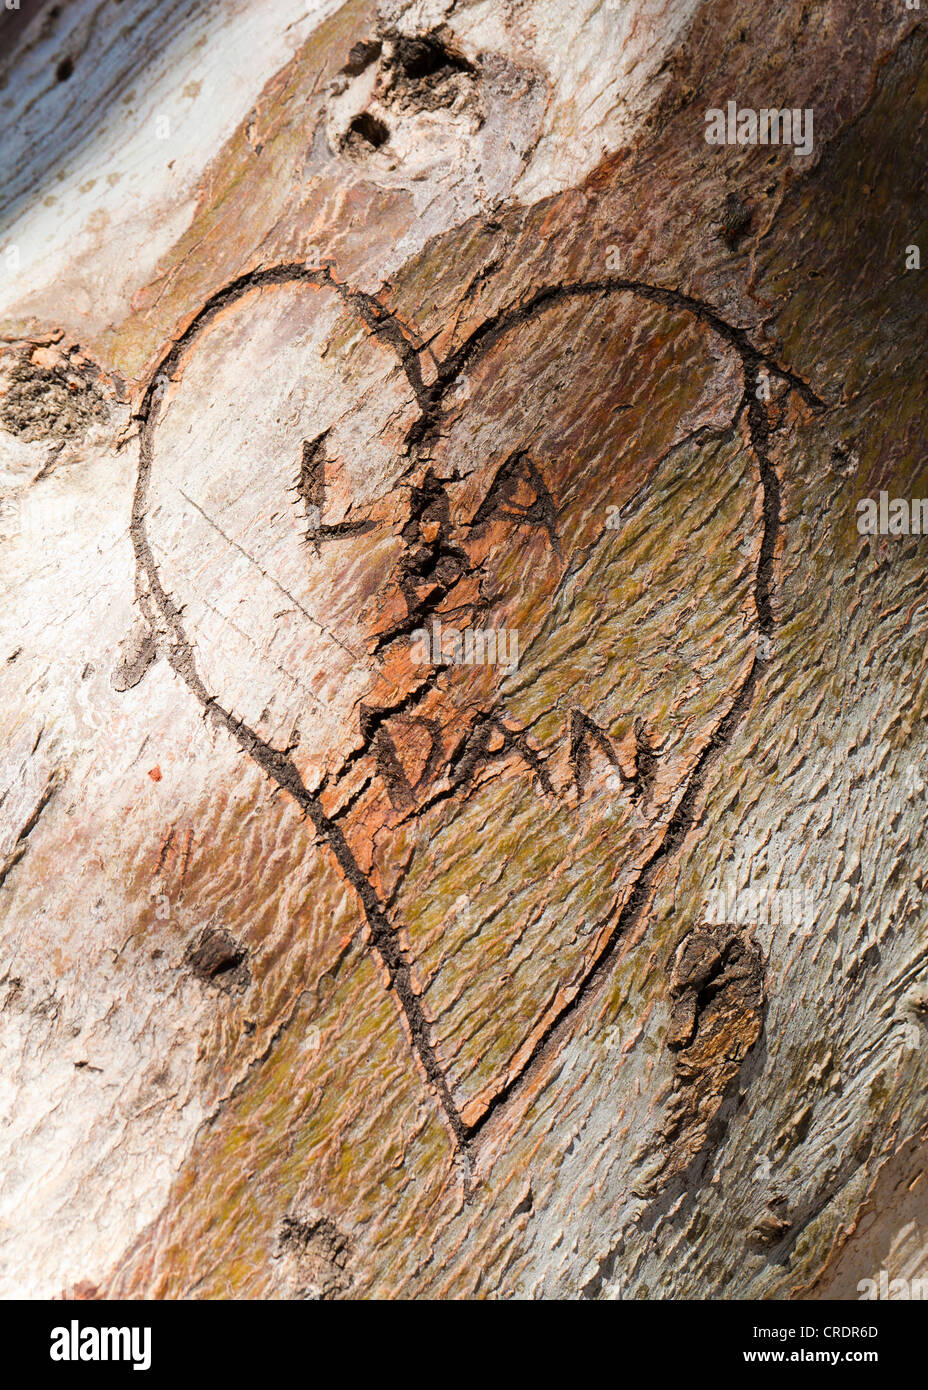 Heart carving on tree trunk - Stock Image